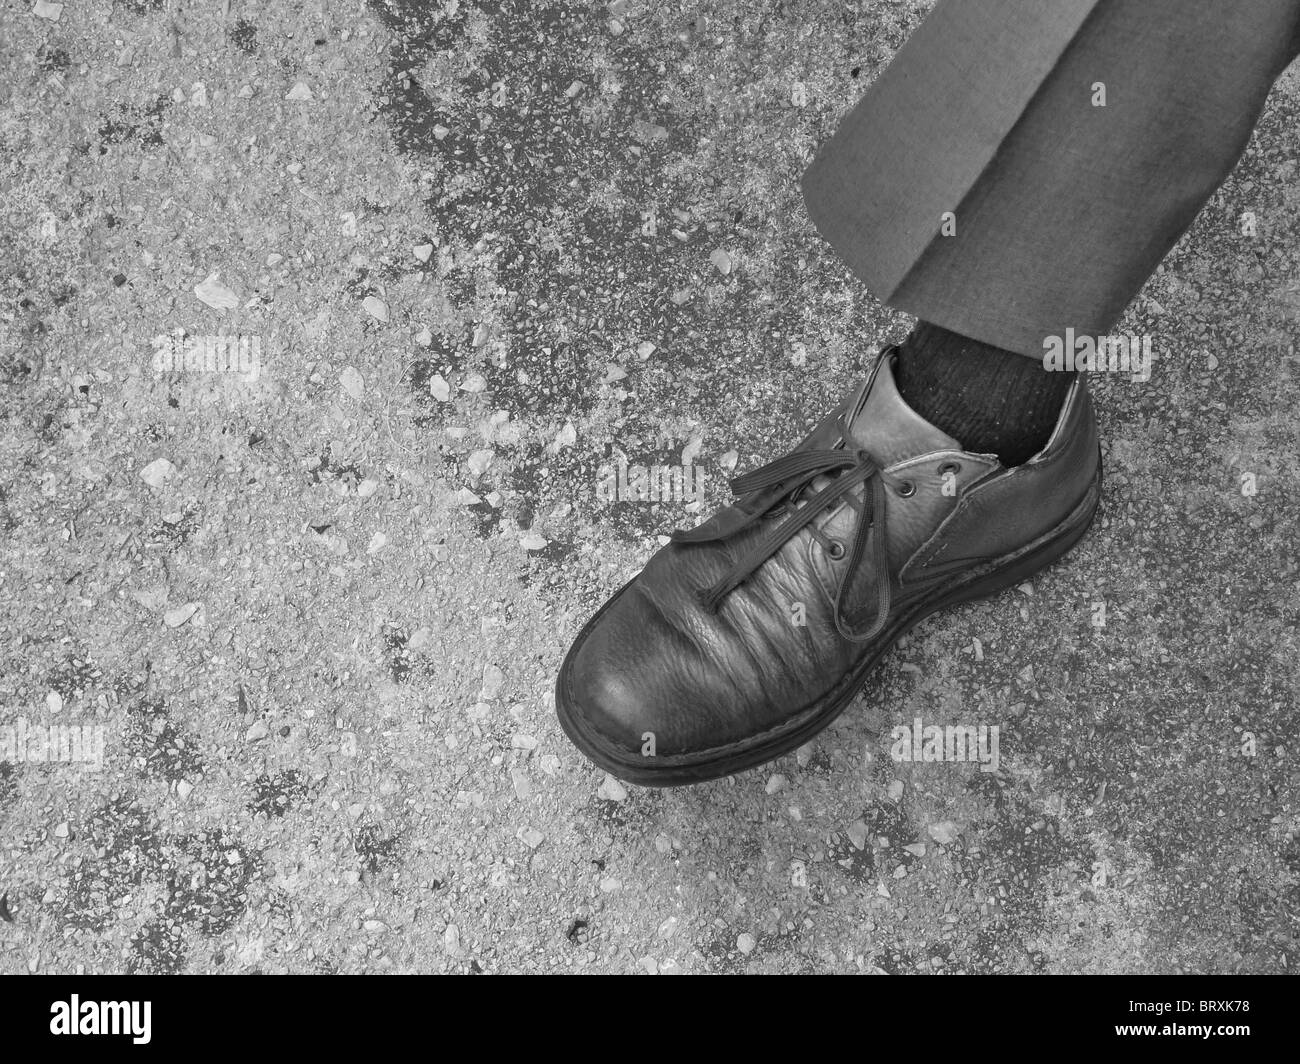 Close-up of an old man's leg and shoe. B&W - Stock Image